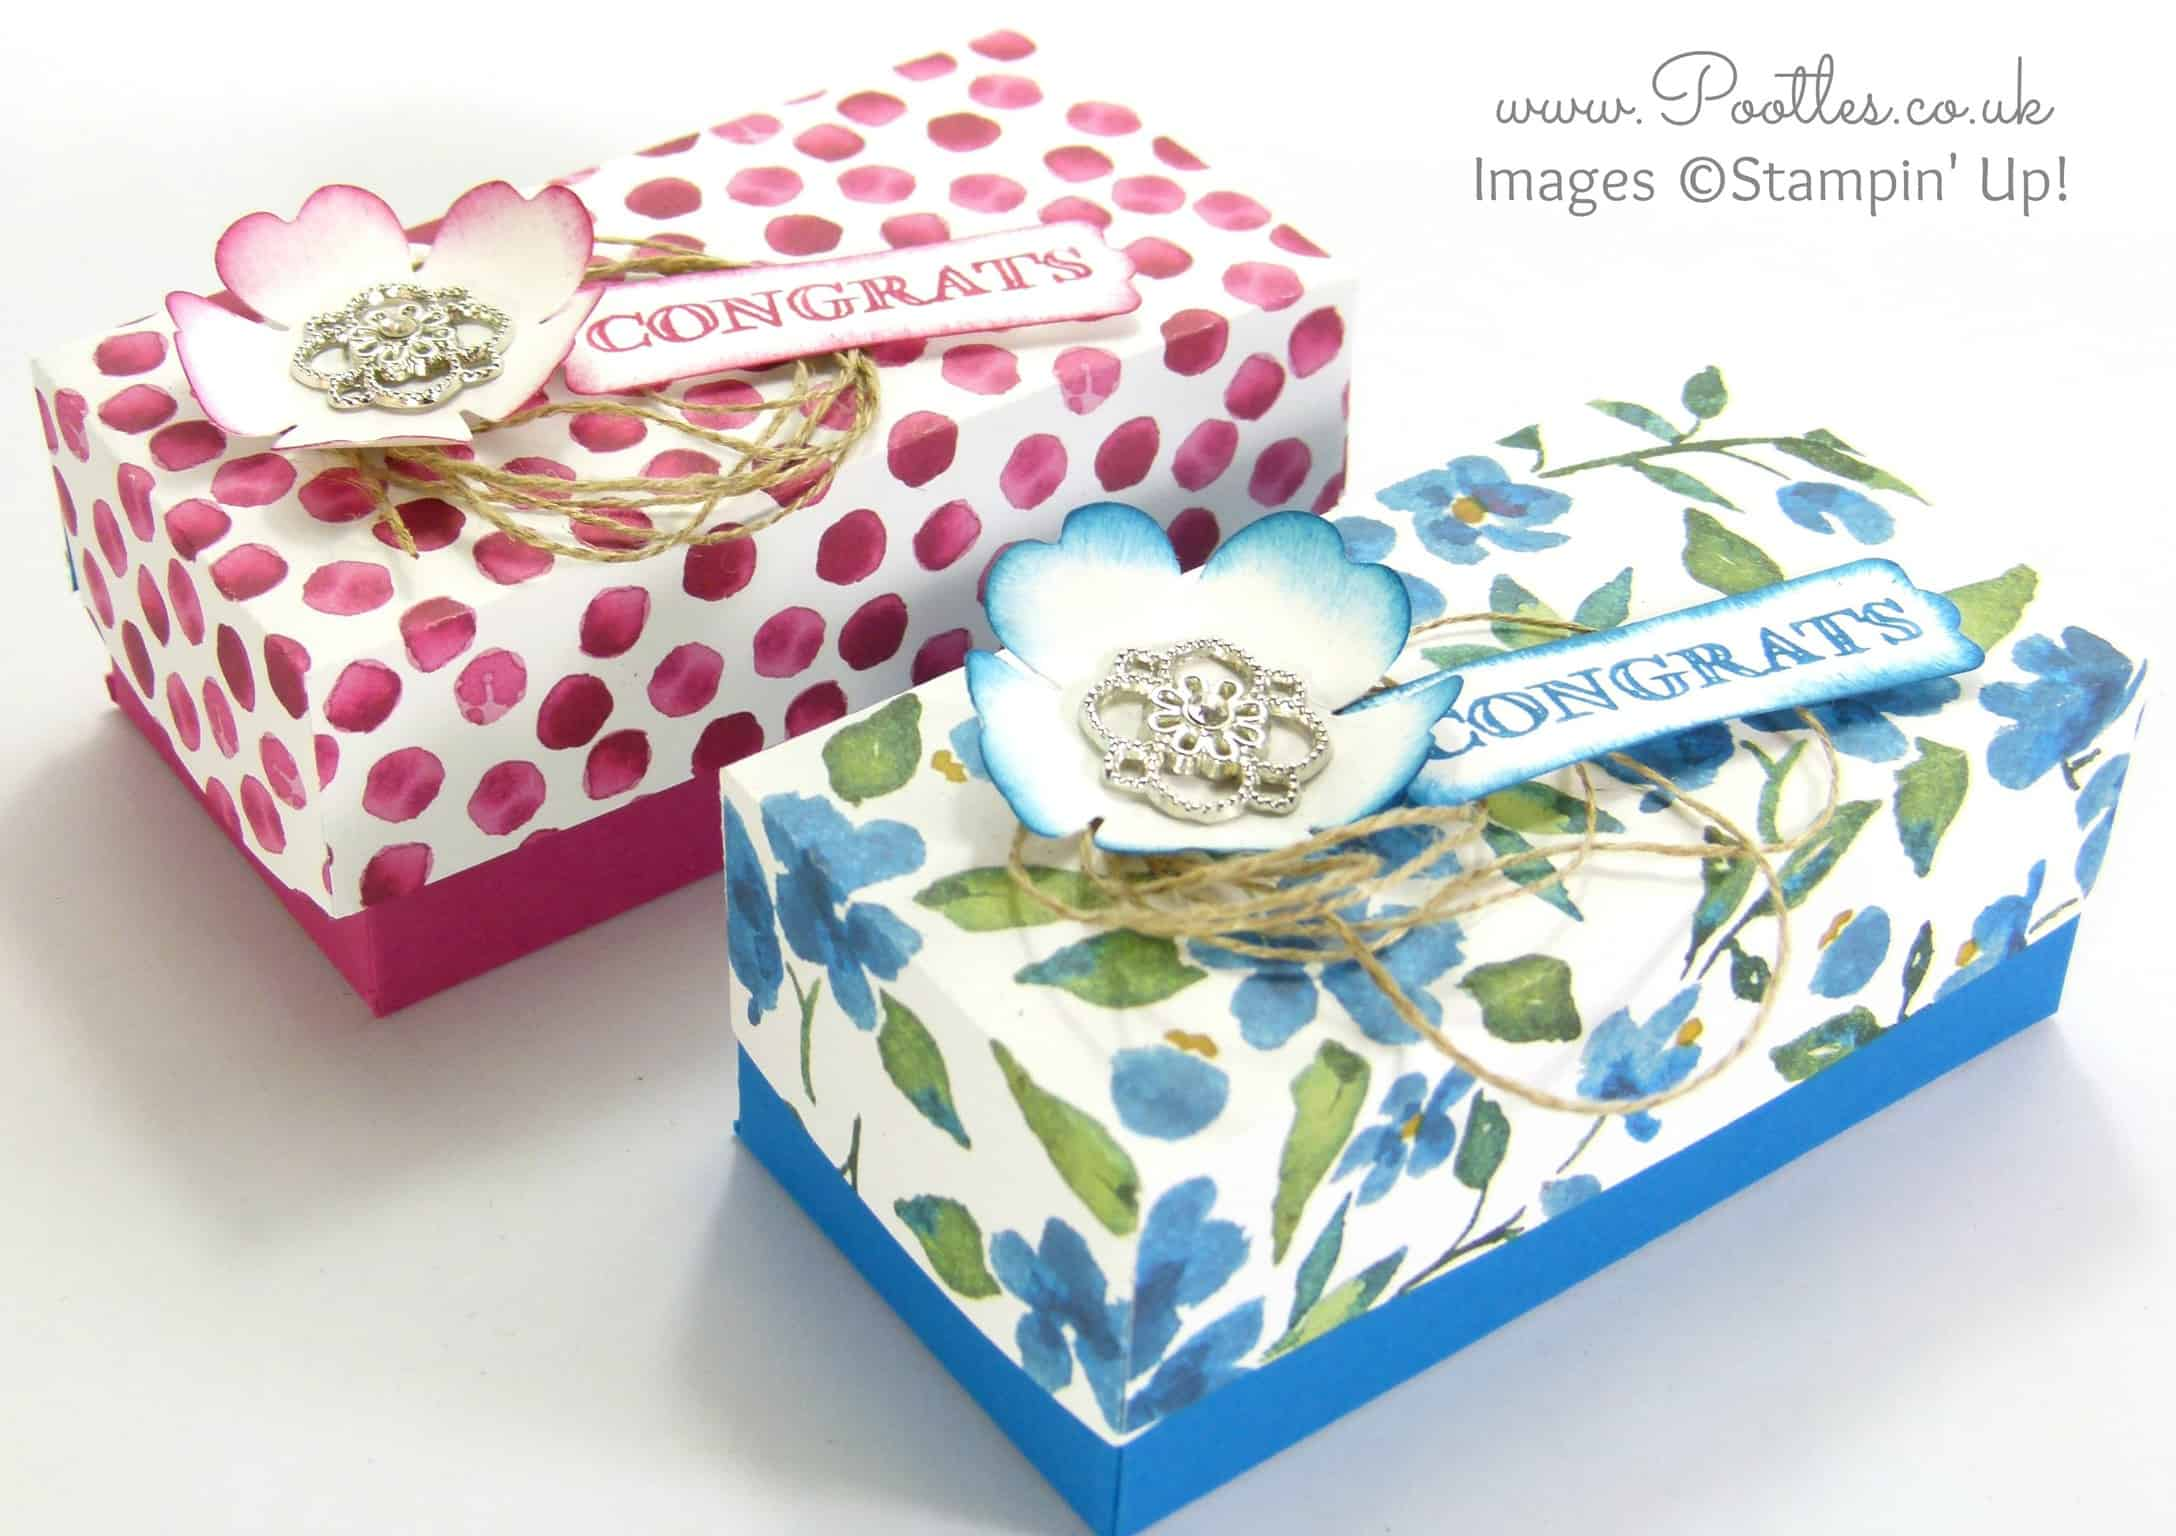 SpringWatch 2015 Rectangular Floral Lidded Box Tutorial